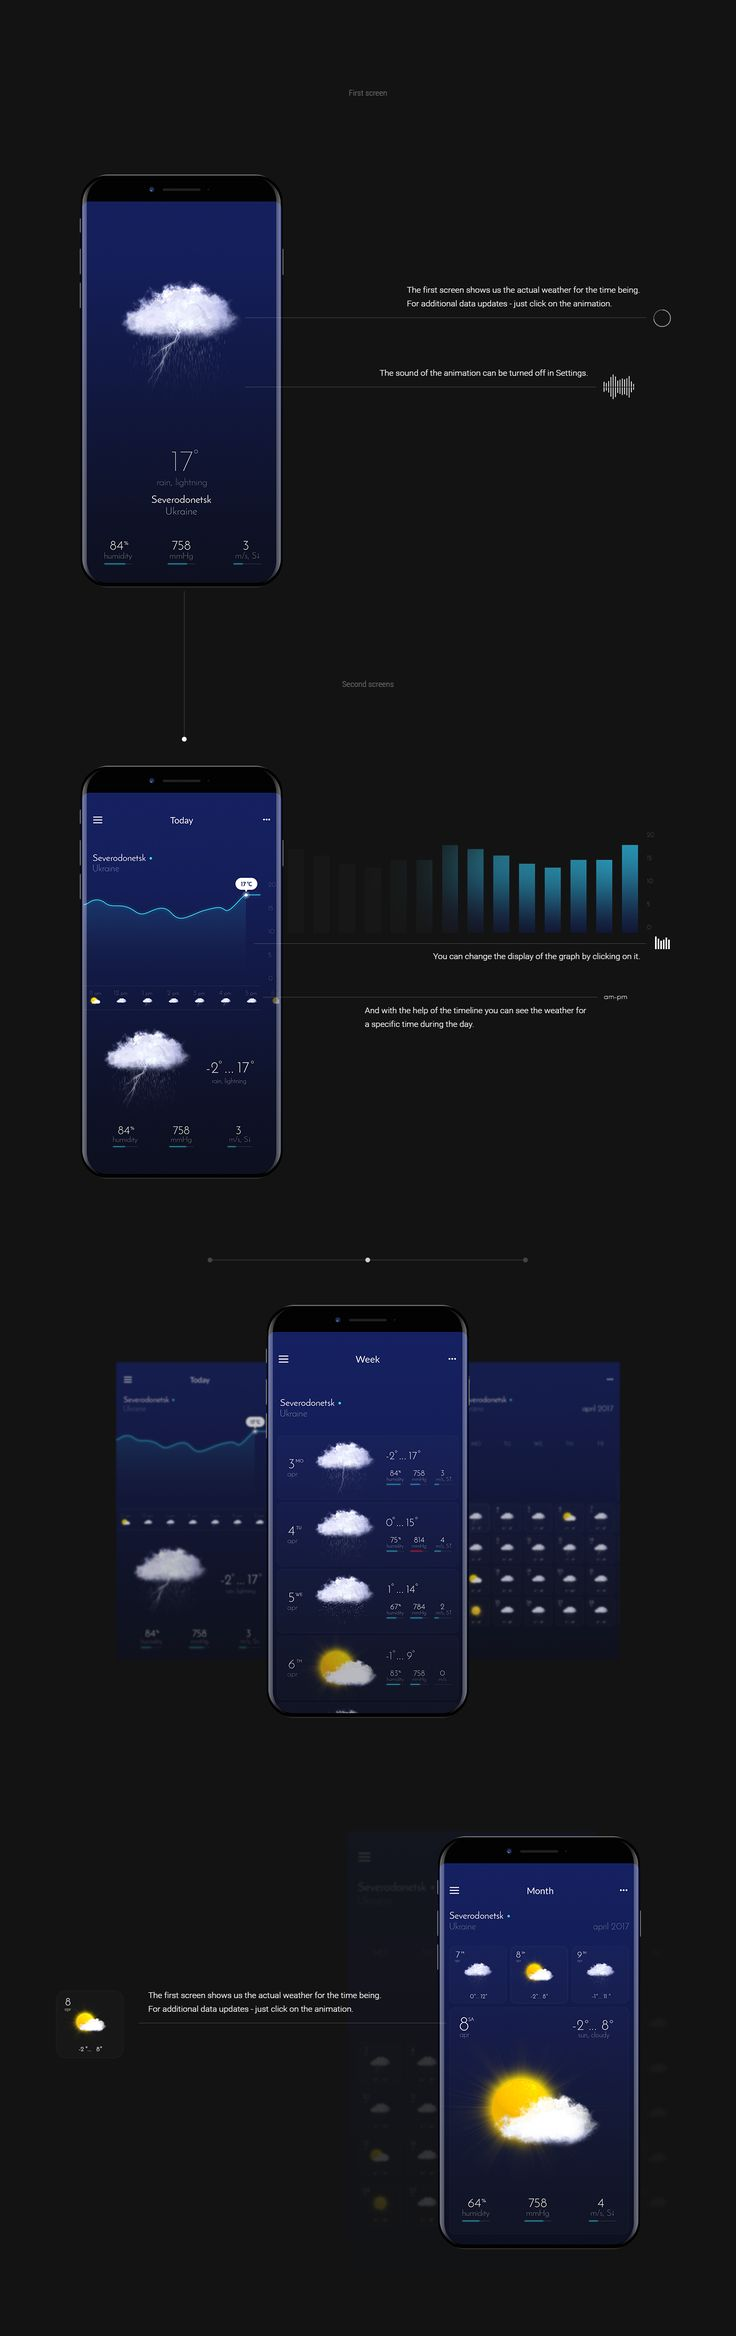 Concept Weather Forecast #Be #behance #web #website #design #UI #UX #site #webdesign #website #weather #weatherforecast #ios #mobile #app